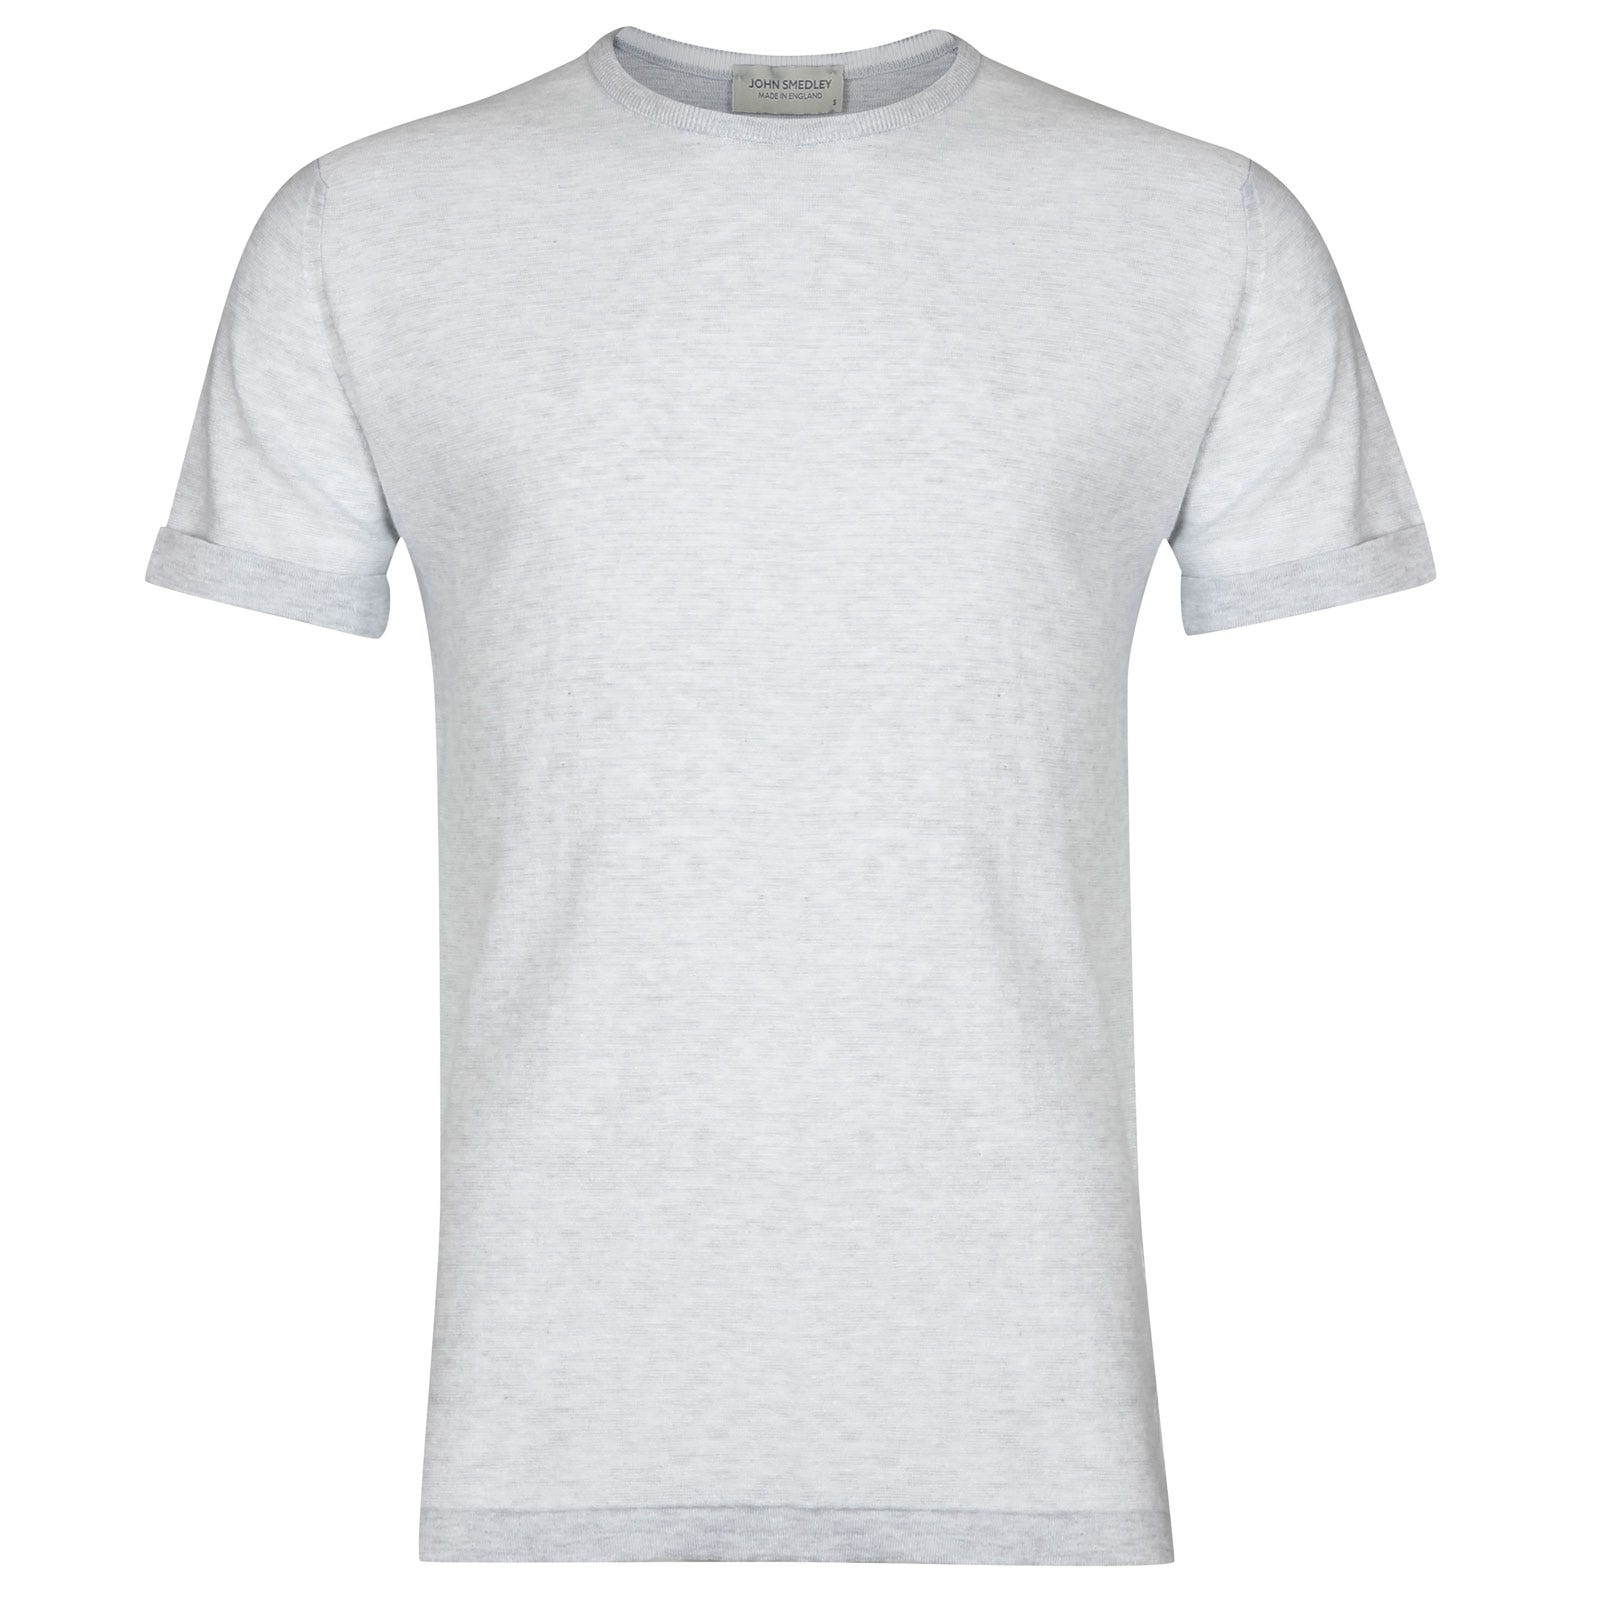 John Smedley benhope Sea Island Cotton T-shirt in Feather Grey/White-M